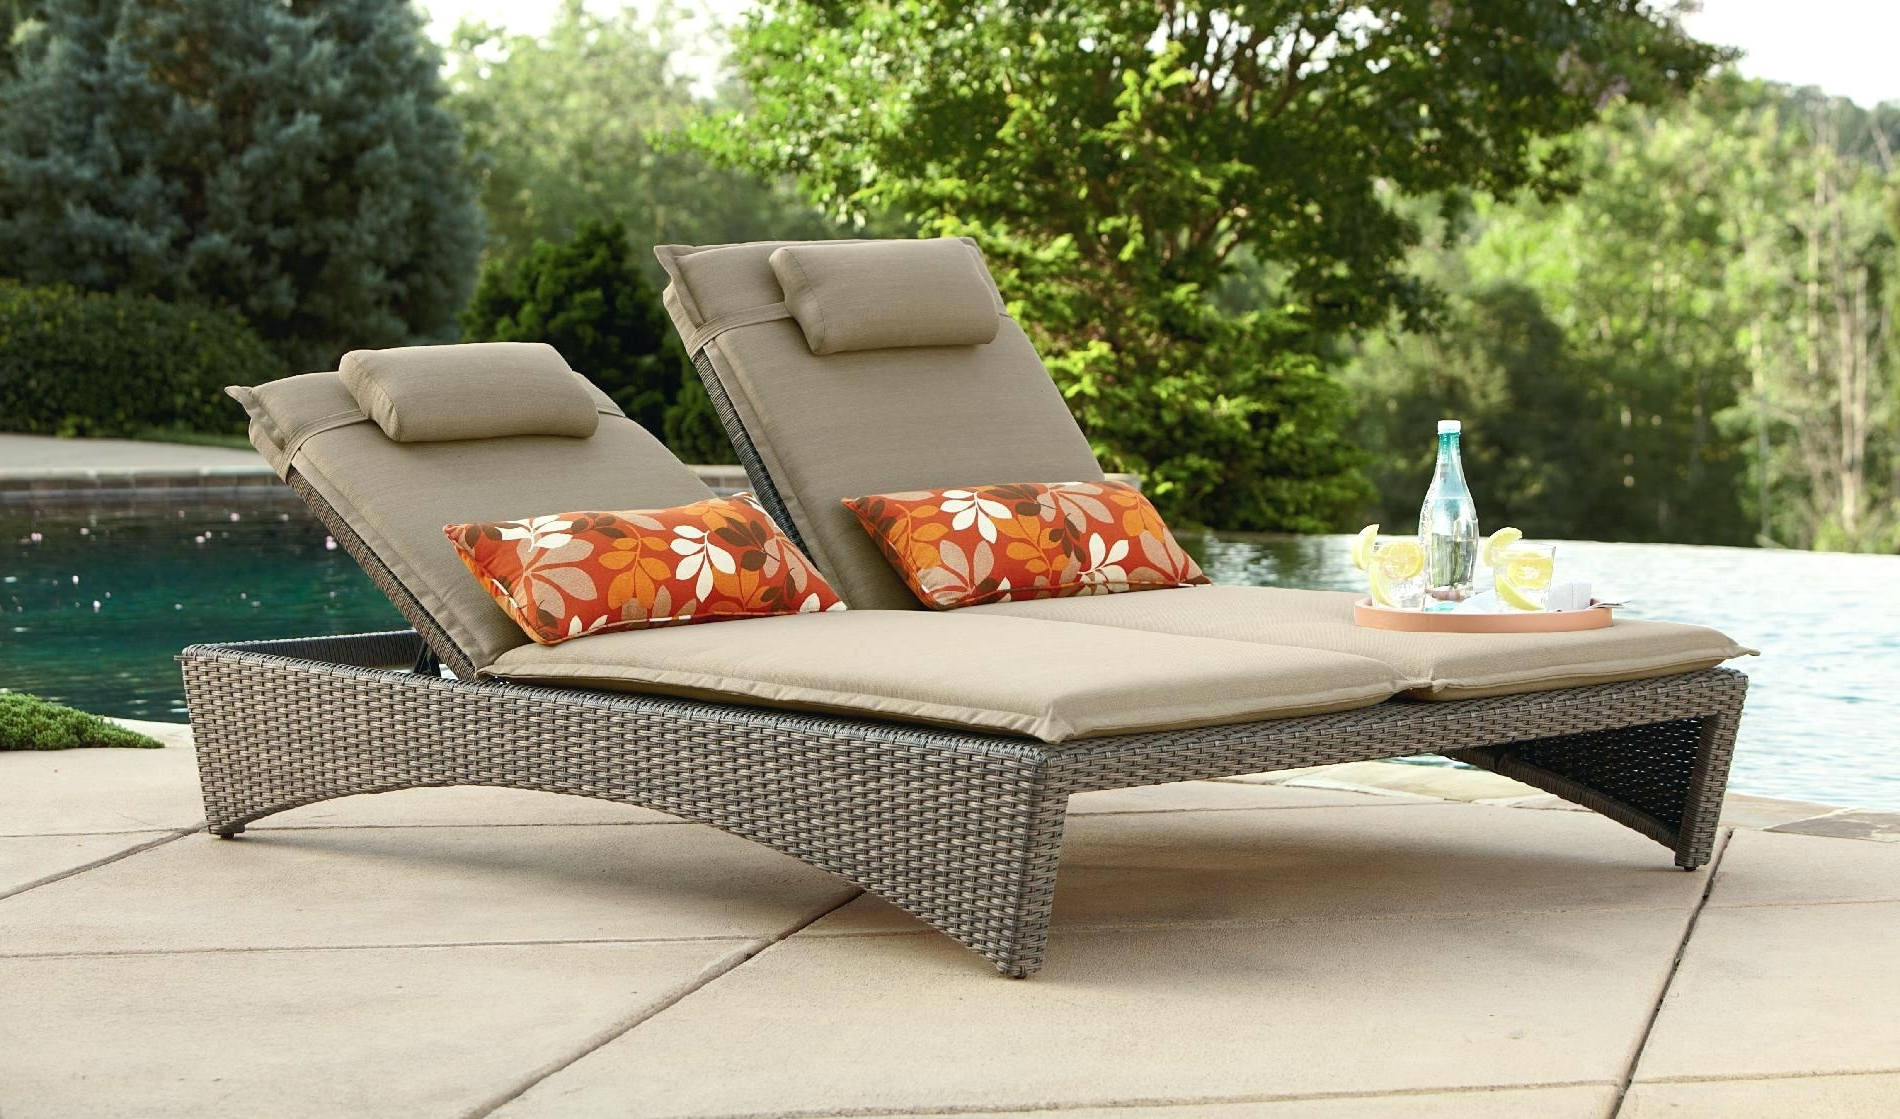 Outdoor Chaise Lounge Chairs Under 100 Awesome Chair For Two In Preferred Outdoor Chaise Lounge Chairs Under $ (View 12 of 15)